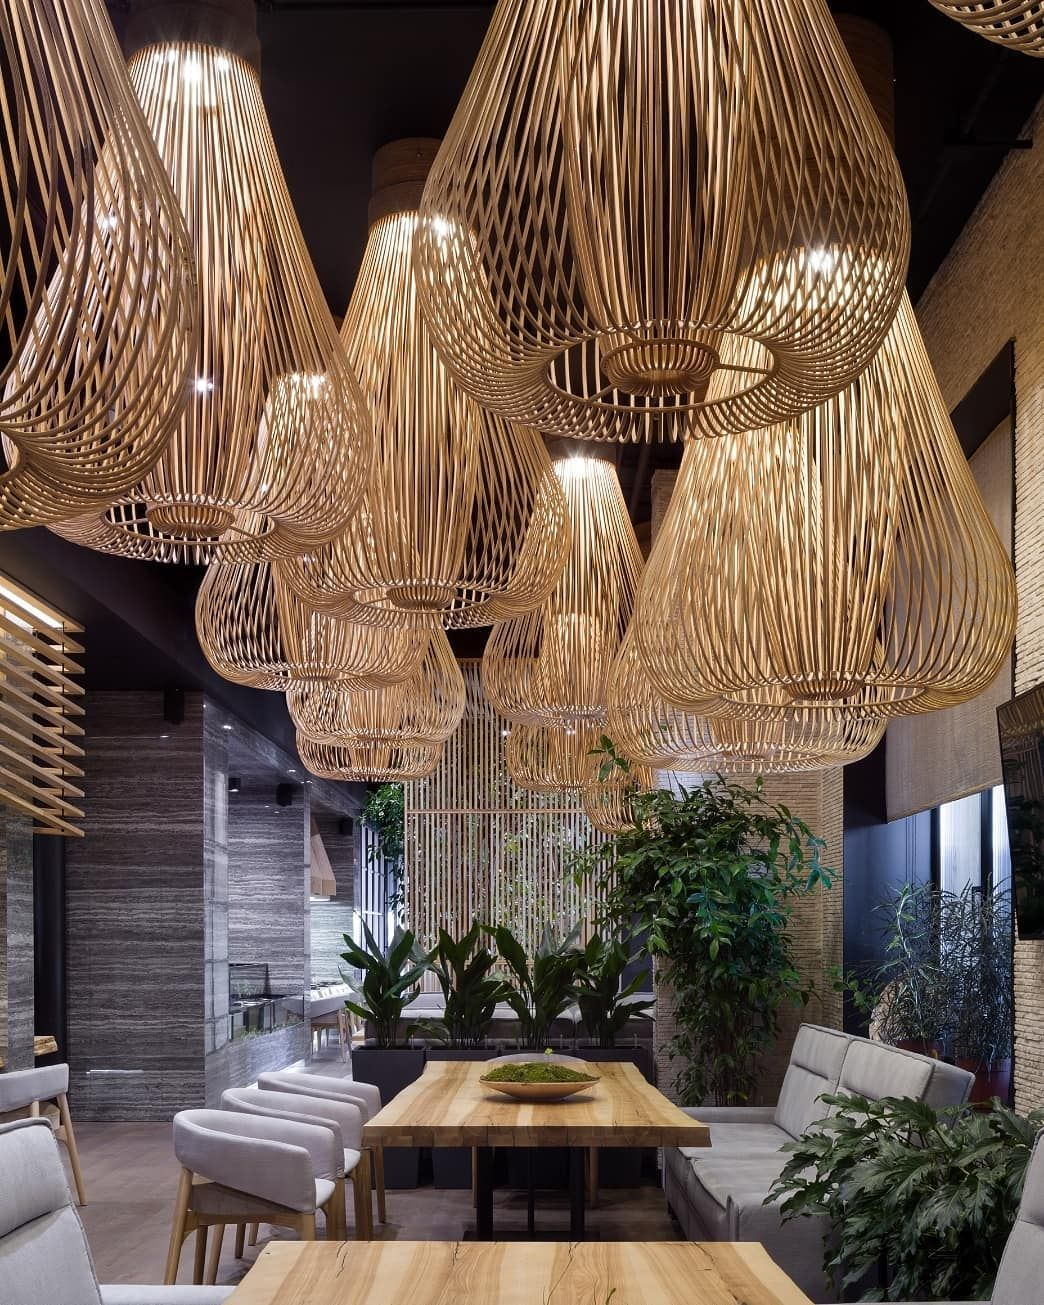 Restaurant Beleuchtung New] The 10 Best Home Decor Today (with Pictures) #homedecor | Japanisches Restaurant Interieur, Restaurant Interieur, Restaurant Deko